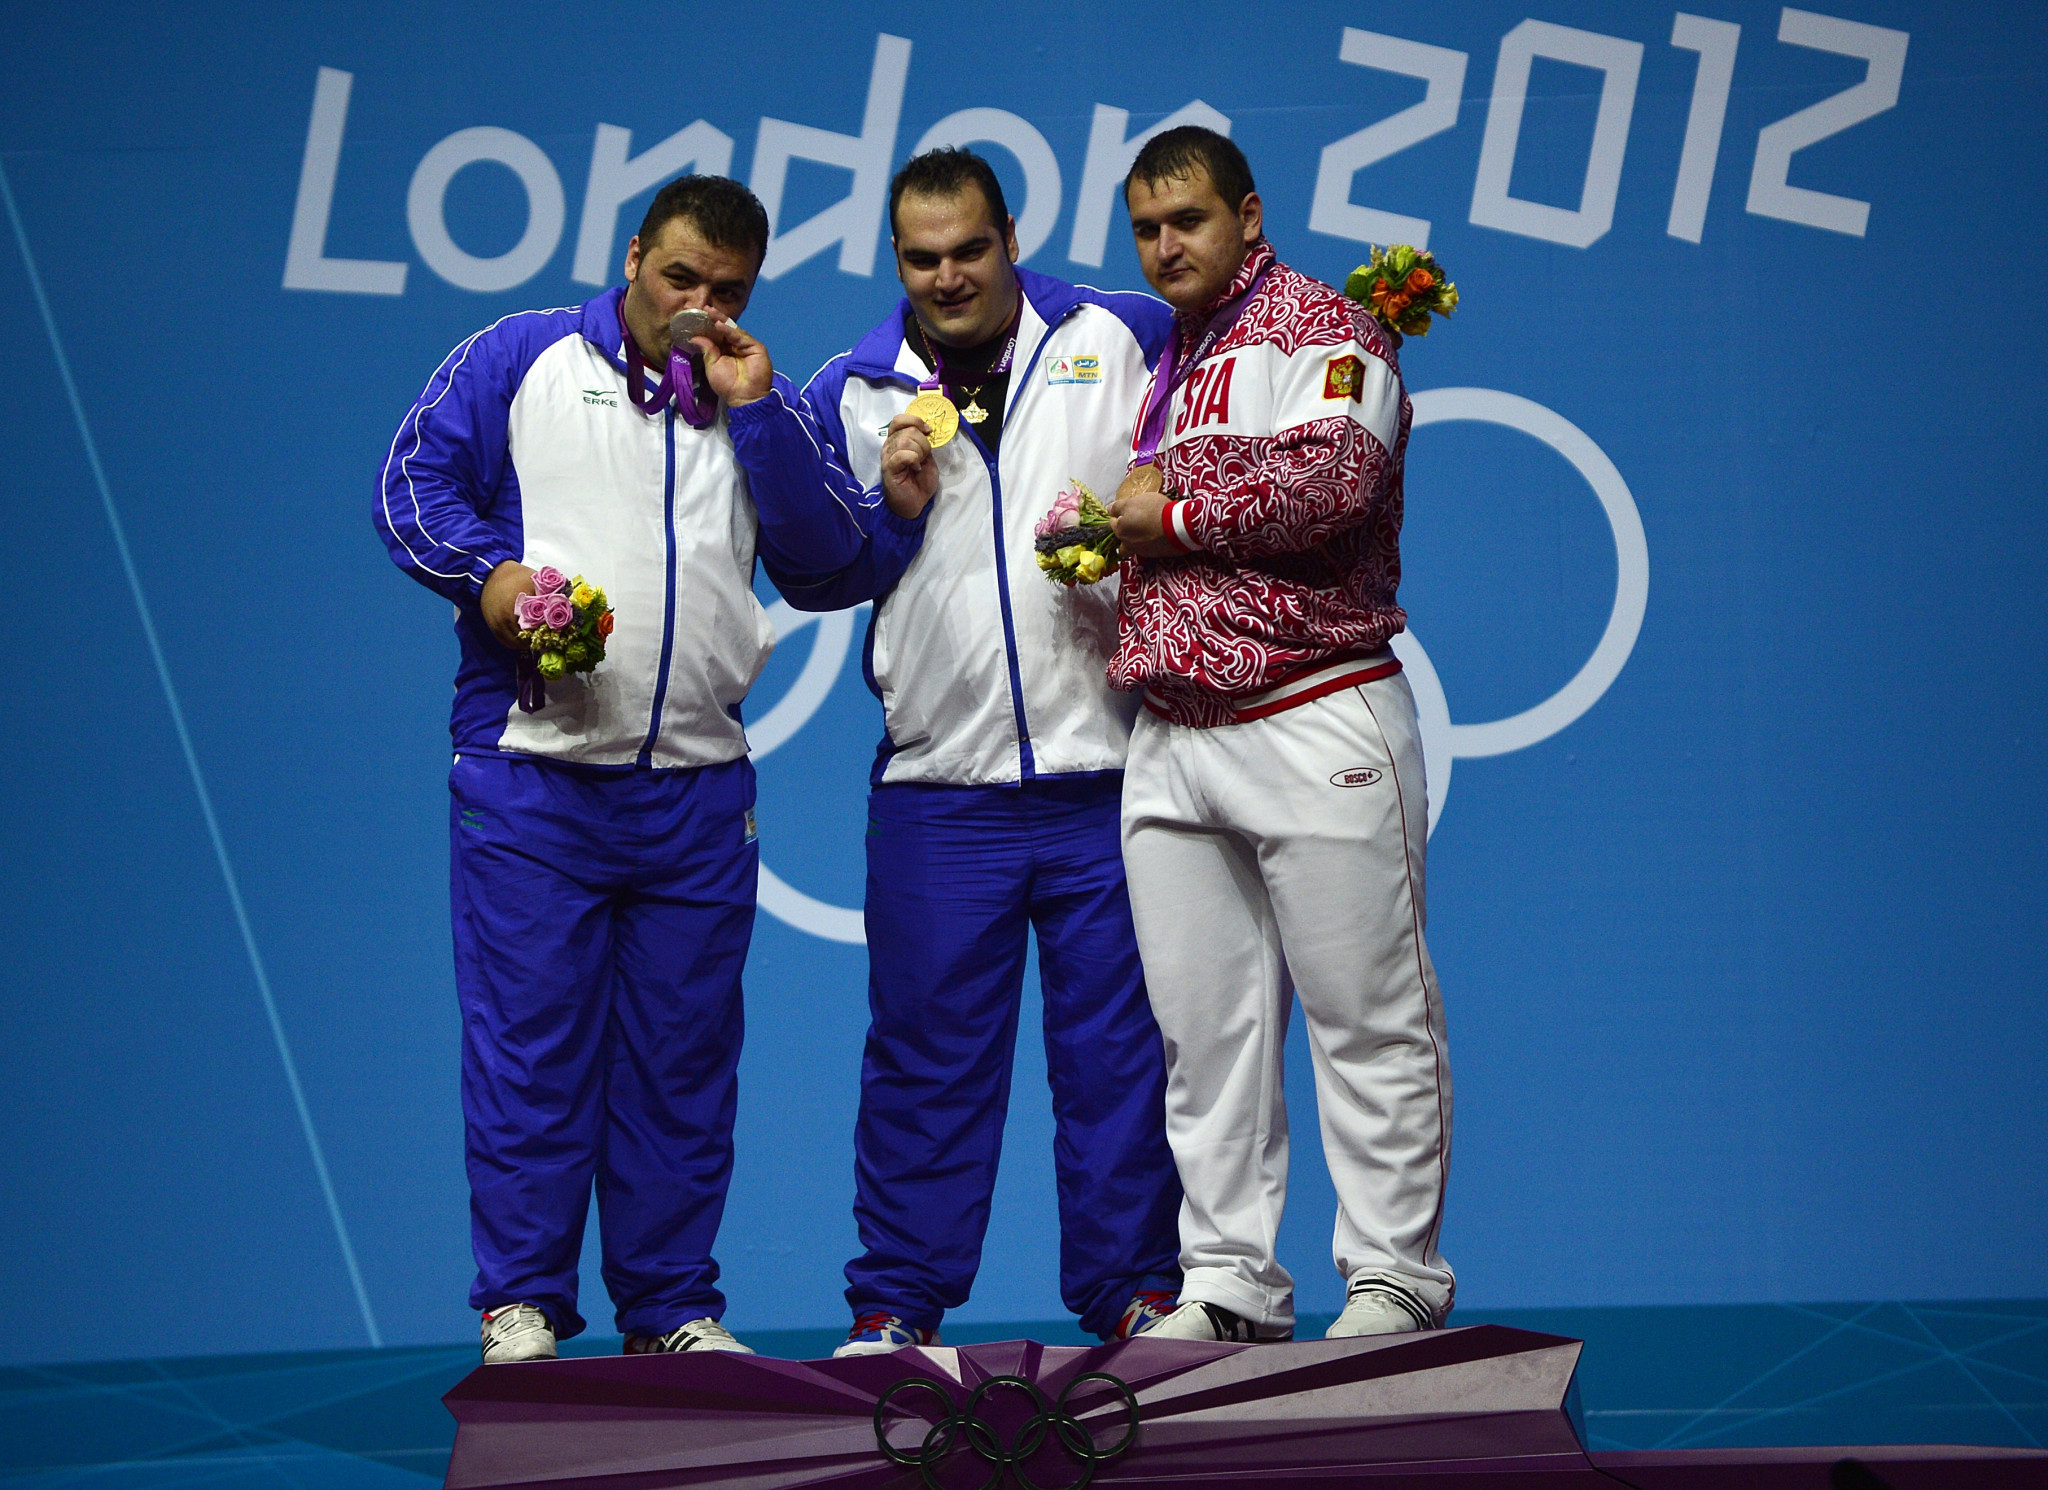 Ruslan Albegov, right, won a bronze medal at London 2012 ©Getty Images